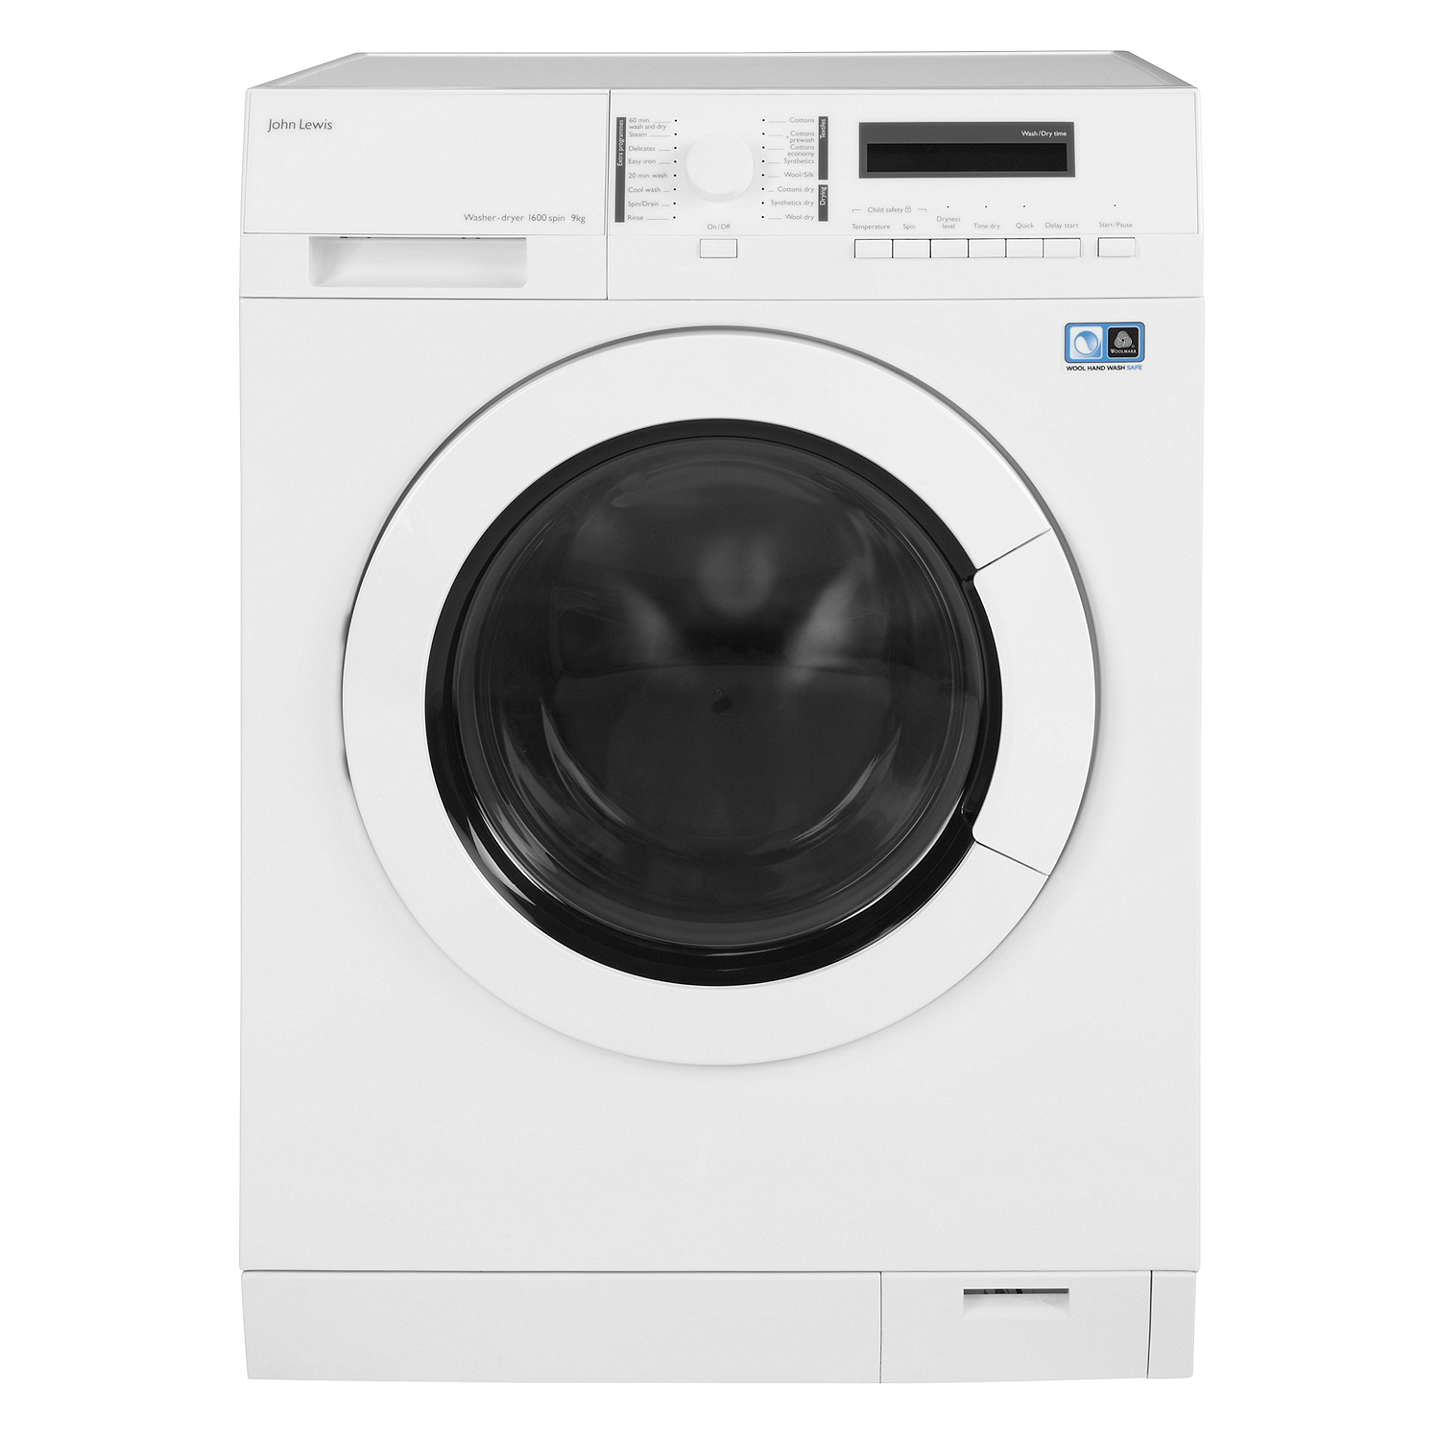 BuyJohn Lewis JLWD1613 Washer Dryer, 9kg Wash/6kg Dry Load, A Energy Rating, 1600rpm Spin, White Online at johnlewis.com